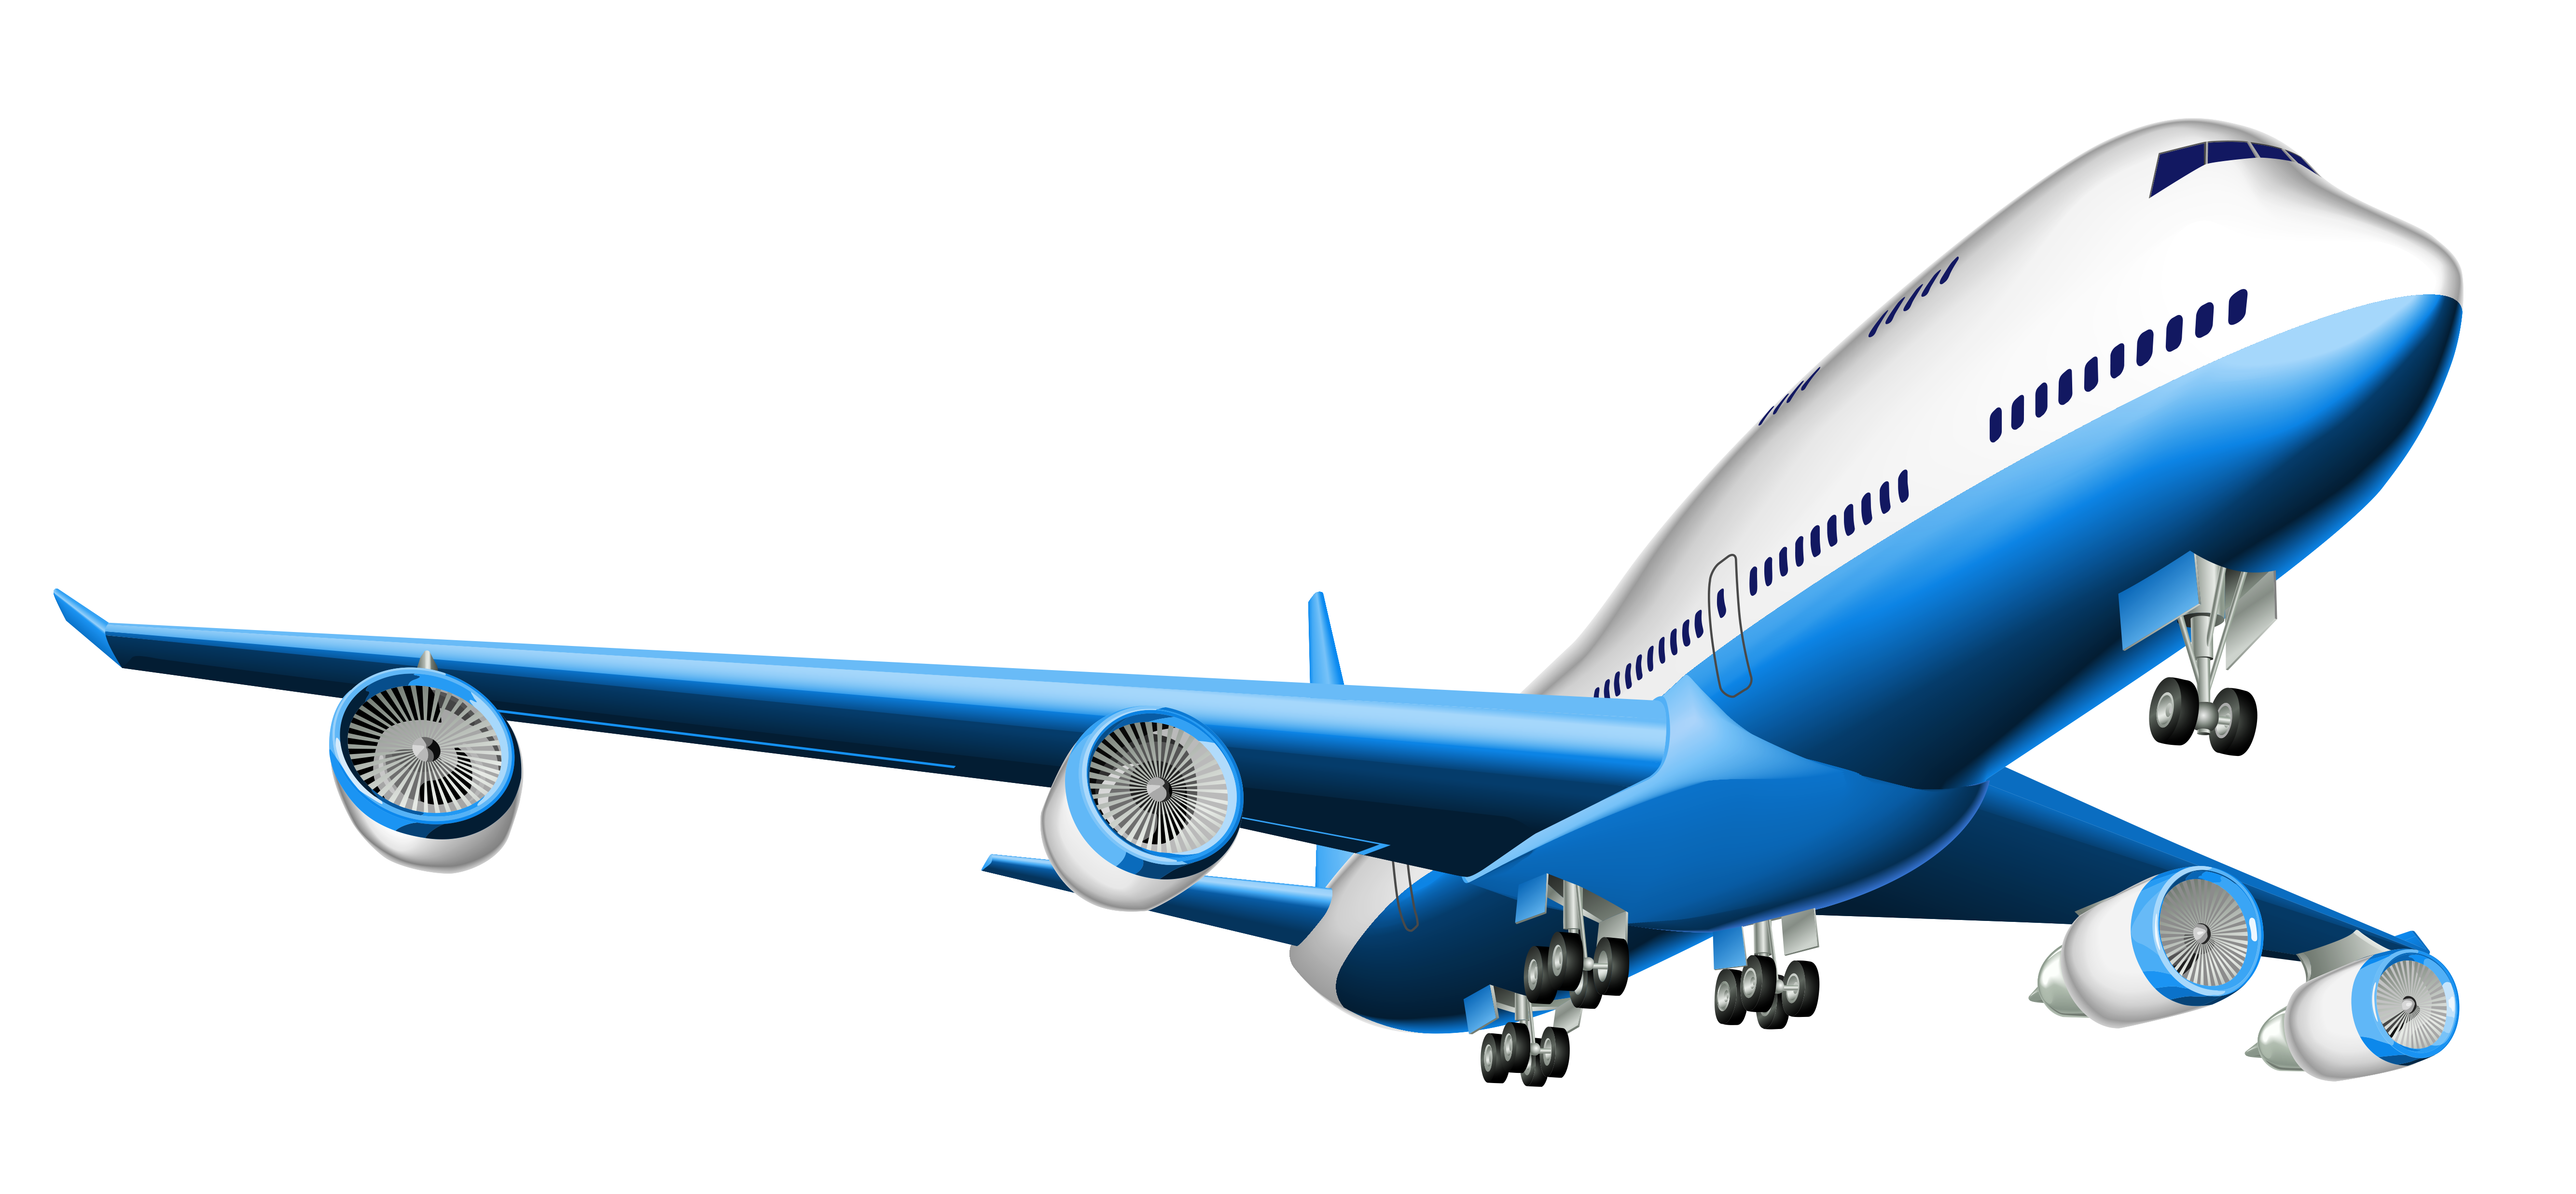 Airplane globle clipart clipart transparent download Airplane Flight Globe Clip art - Airliner Transparent PNG Vector ... clipart transparent download